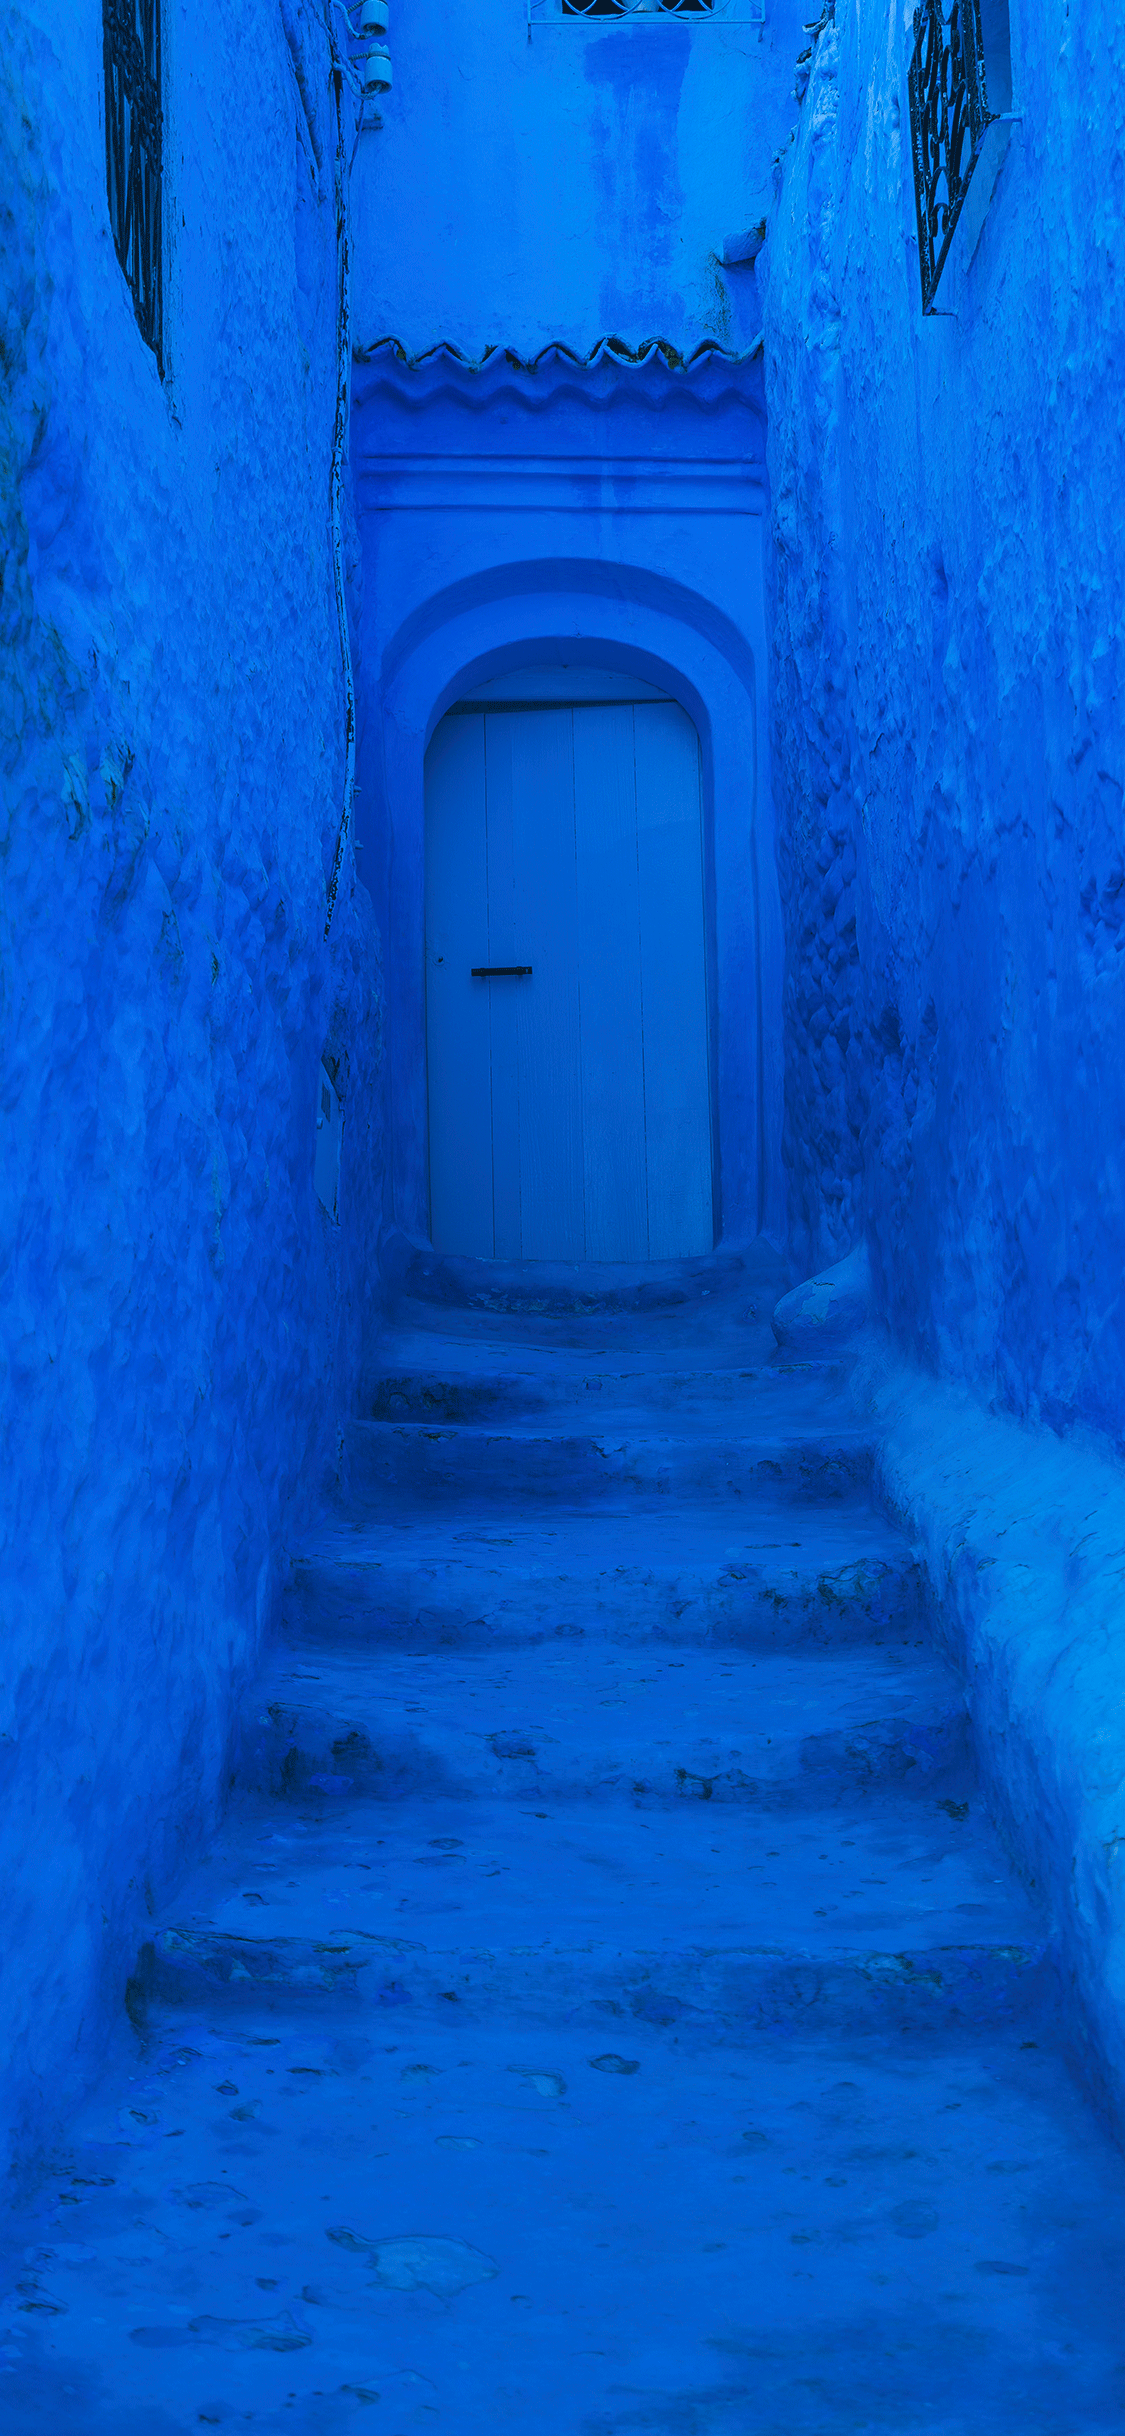 iPhone wallpaper blue door Blue